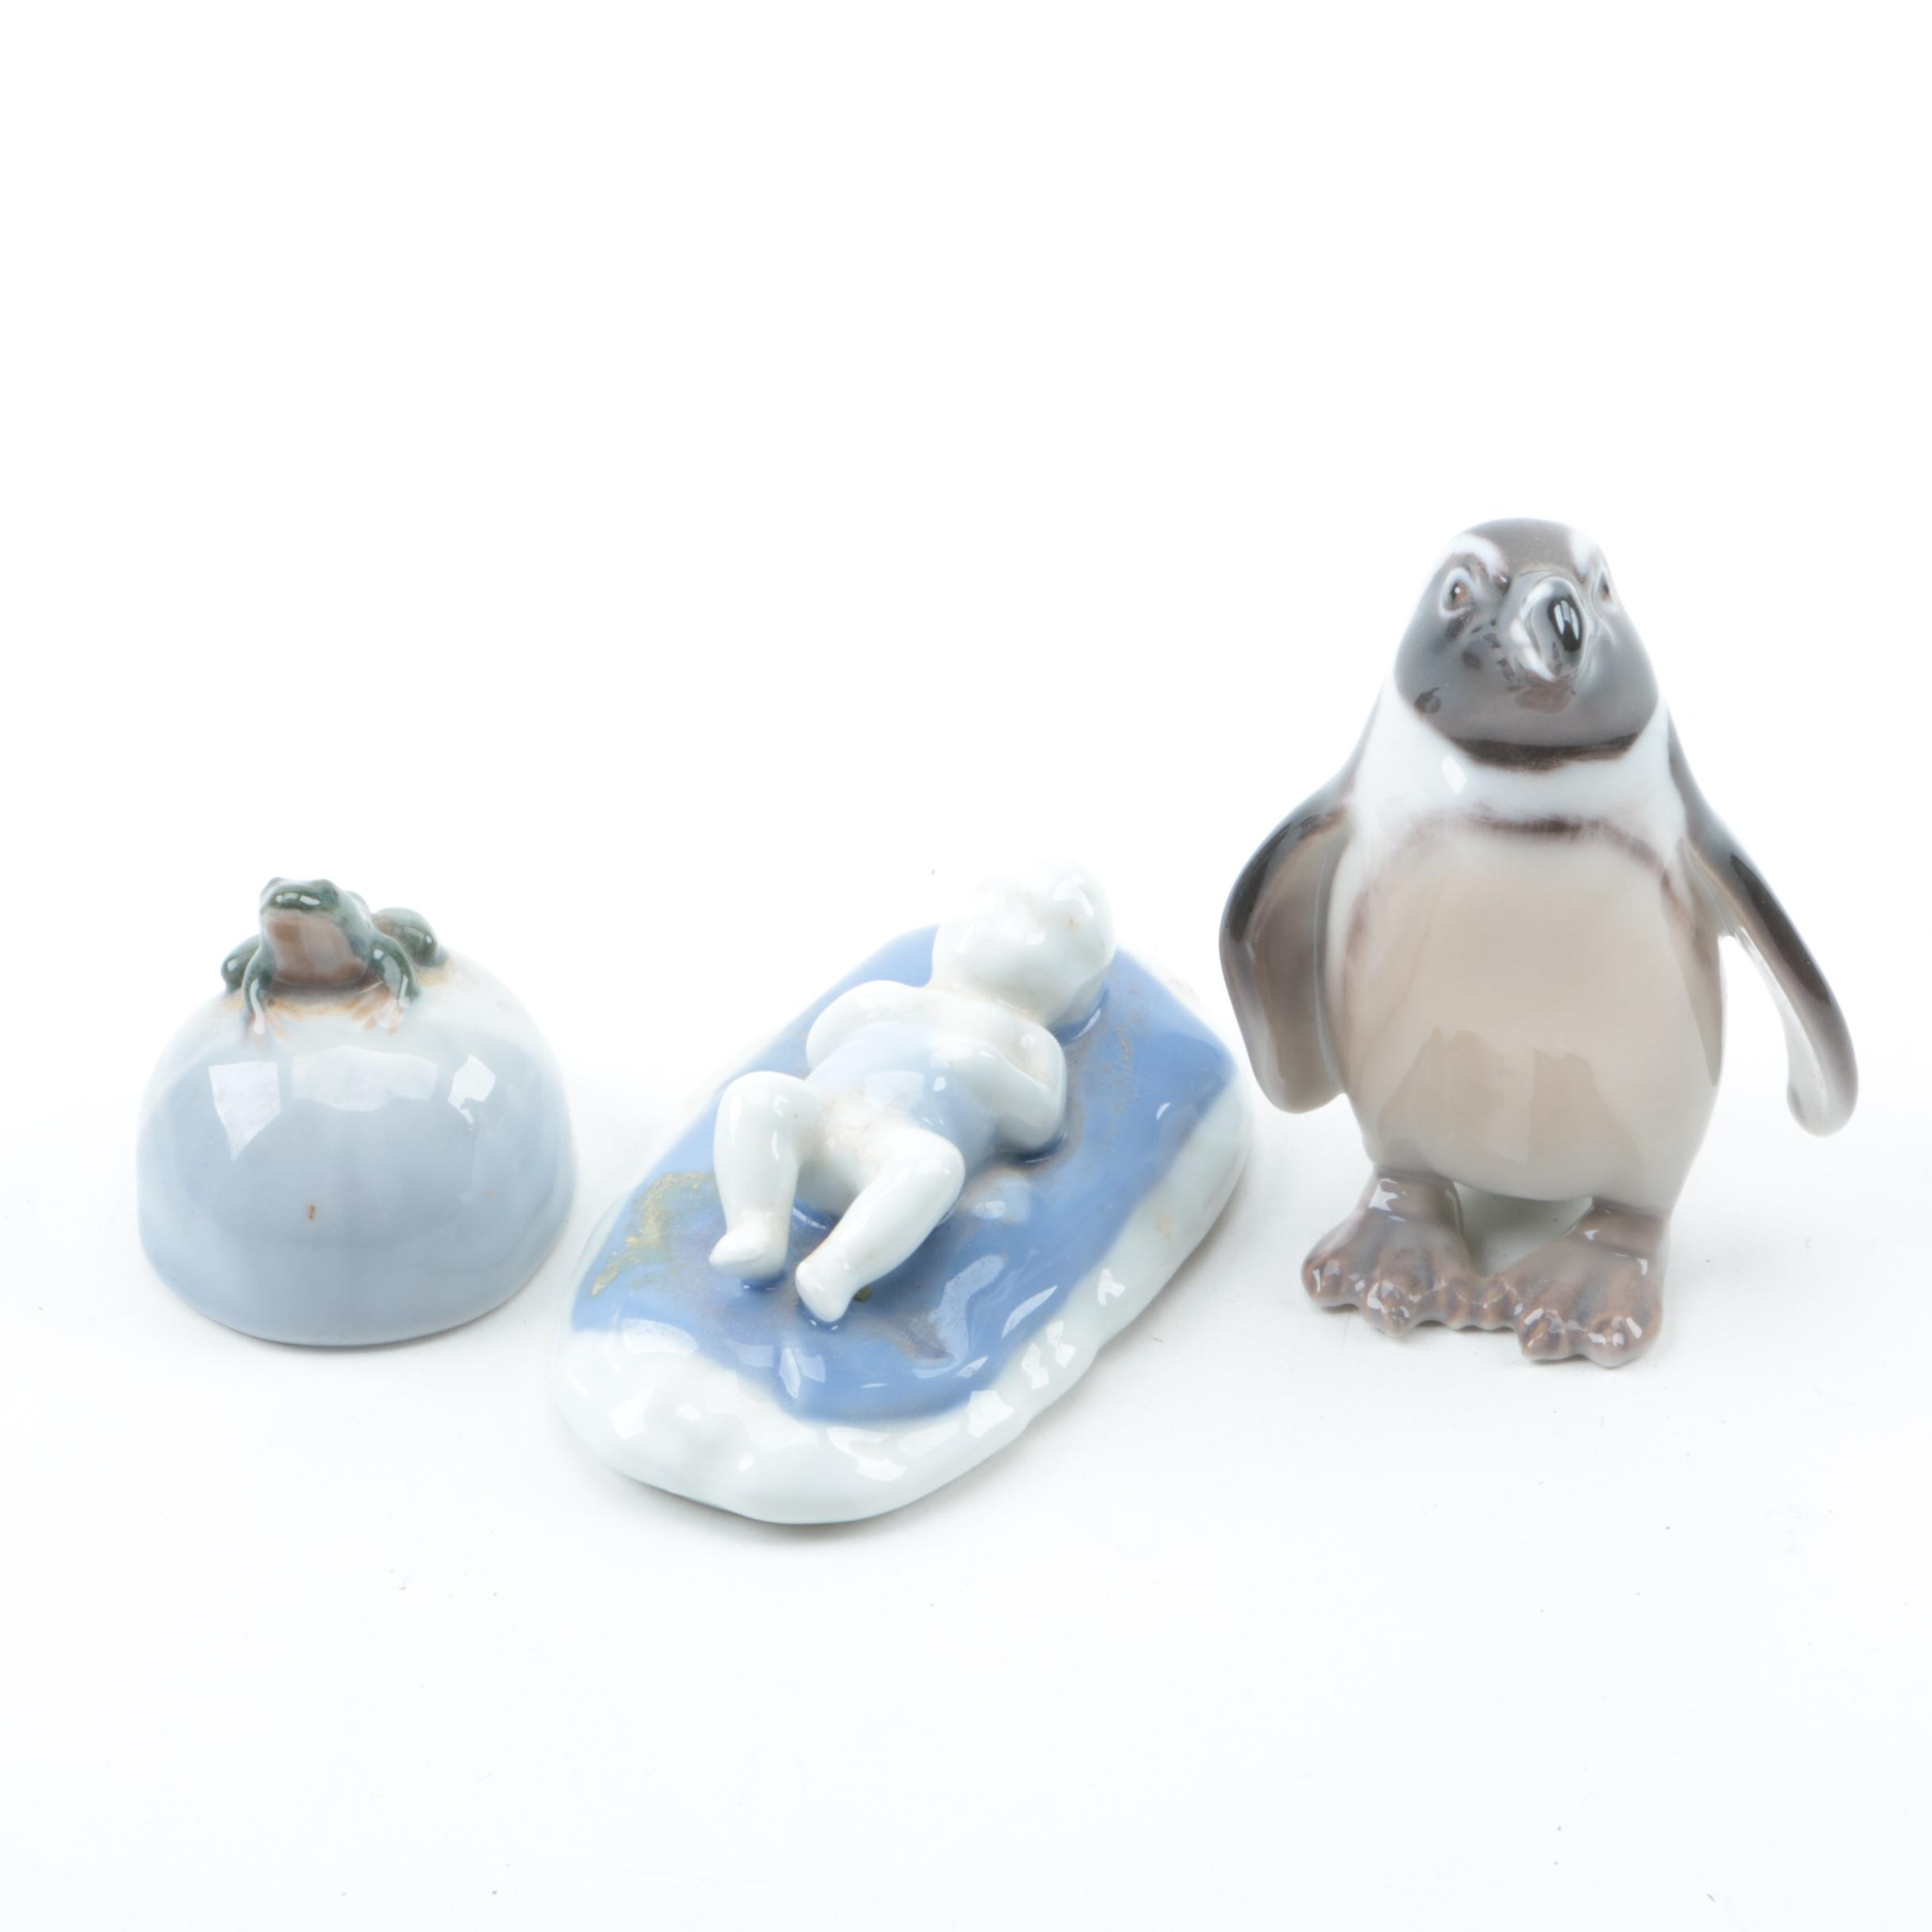 Miniature Porcelain Figurines Featuring Bing & Grøndahlbing